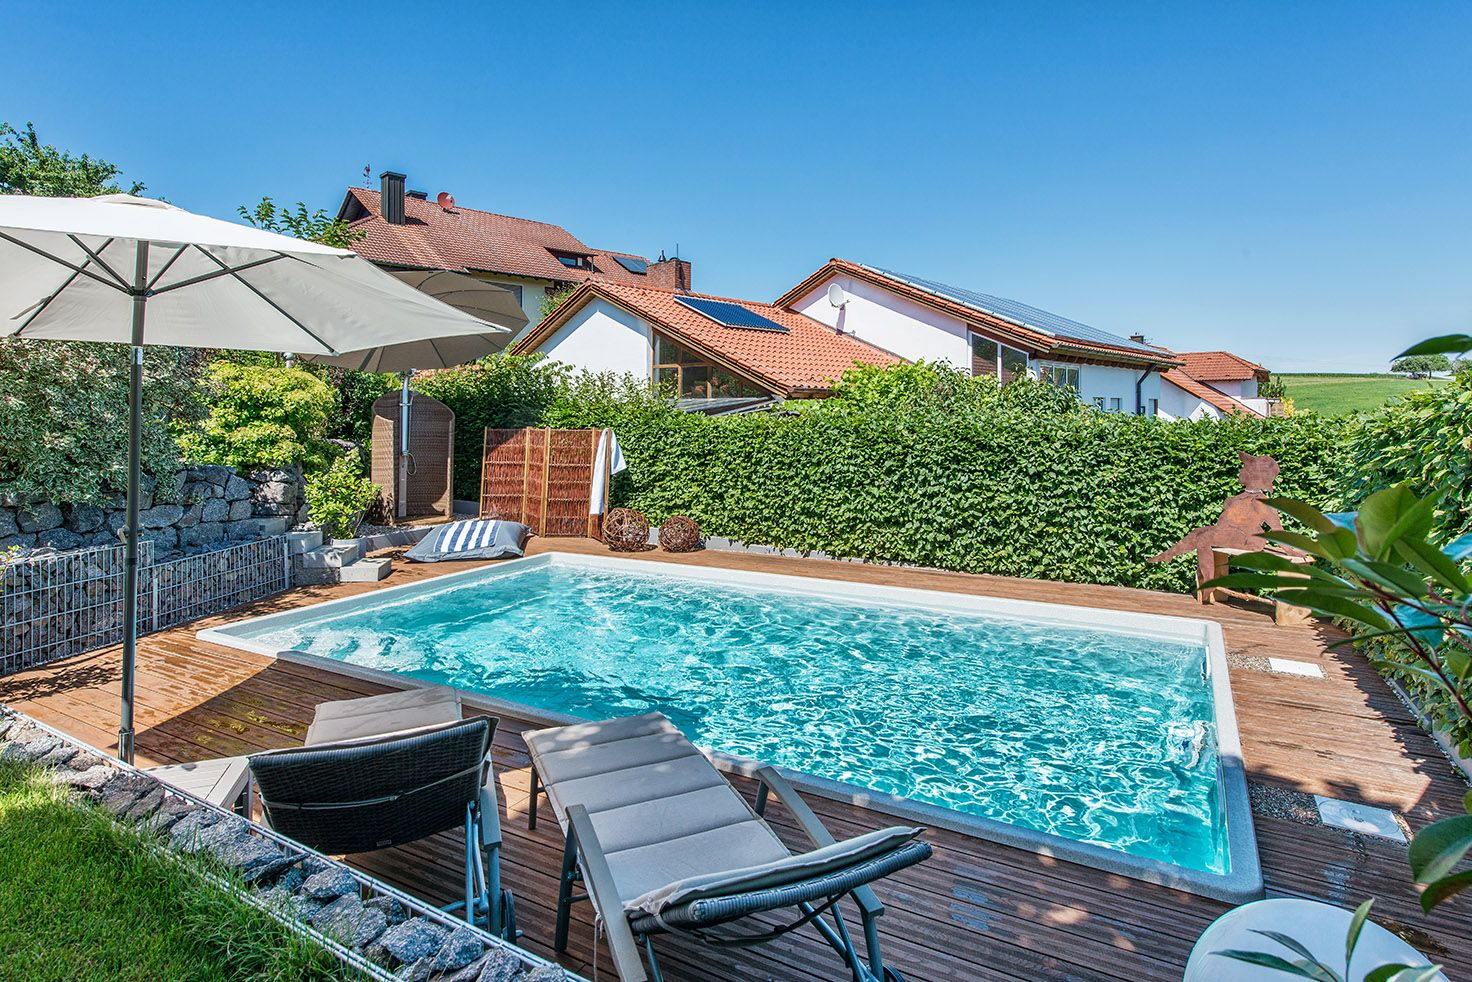 Pool Polyesterbecken Rund Pool Konzept Pool Und Wellness In Perfektion